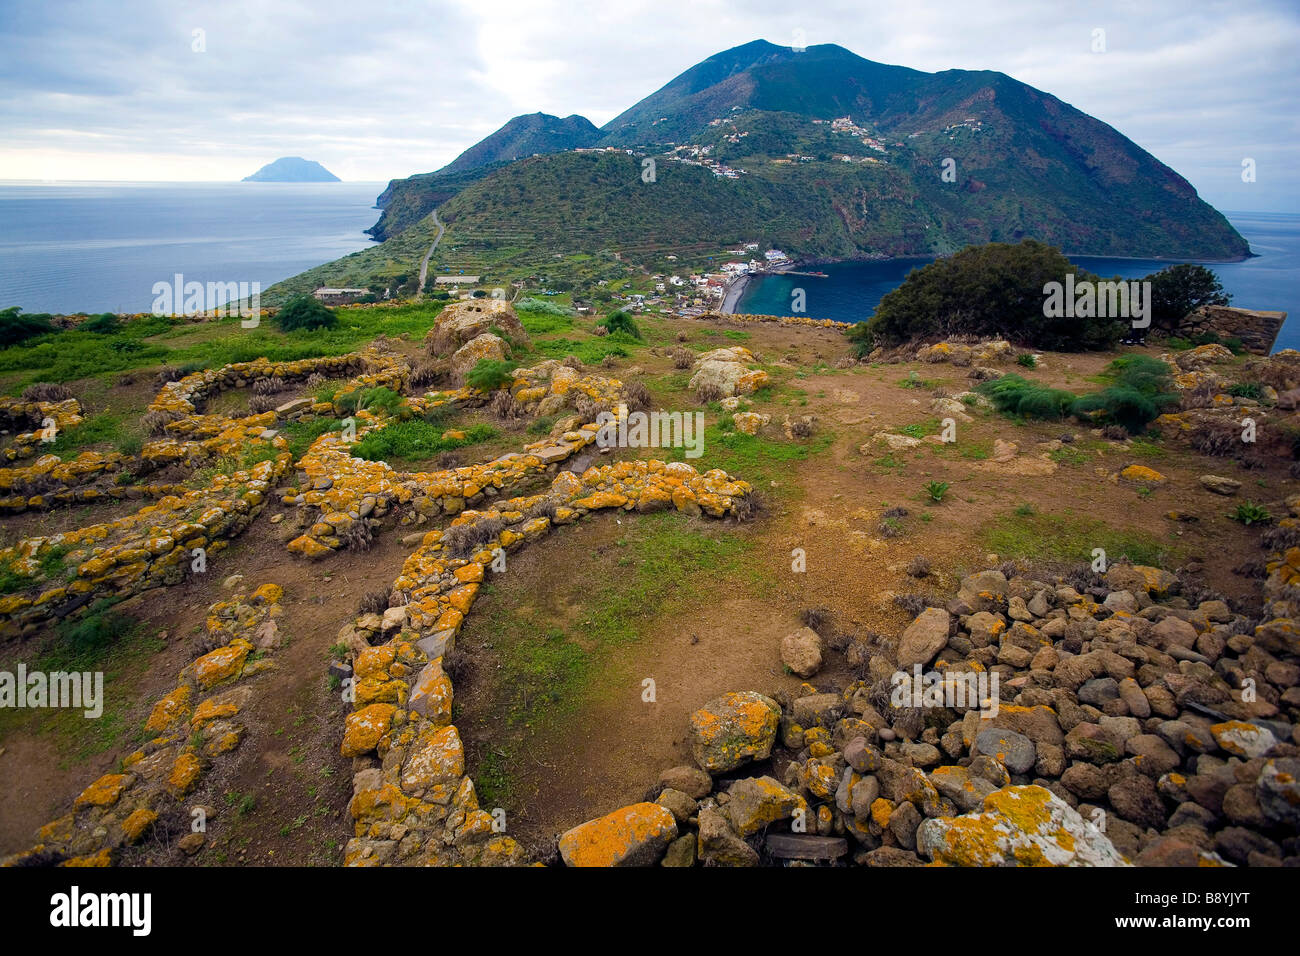 Prehistoric village, Filicudi island, Sicily, Italy Stock Photo